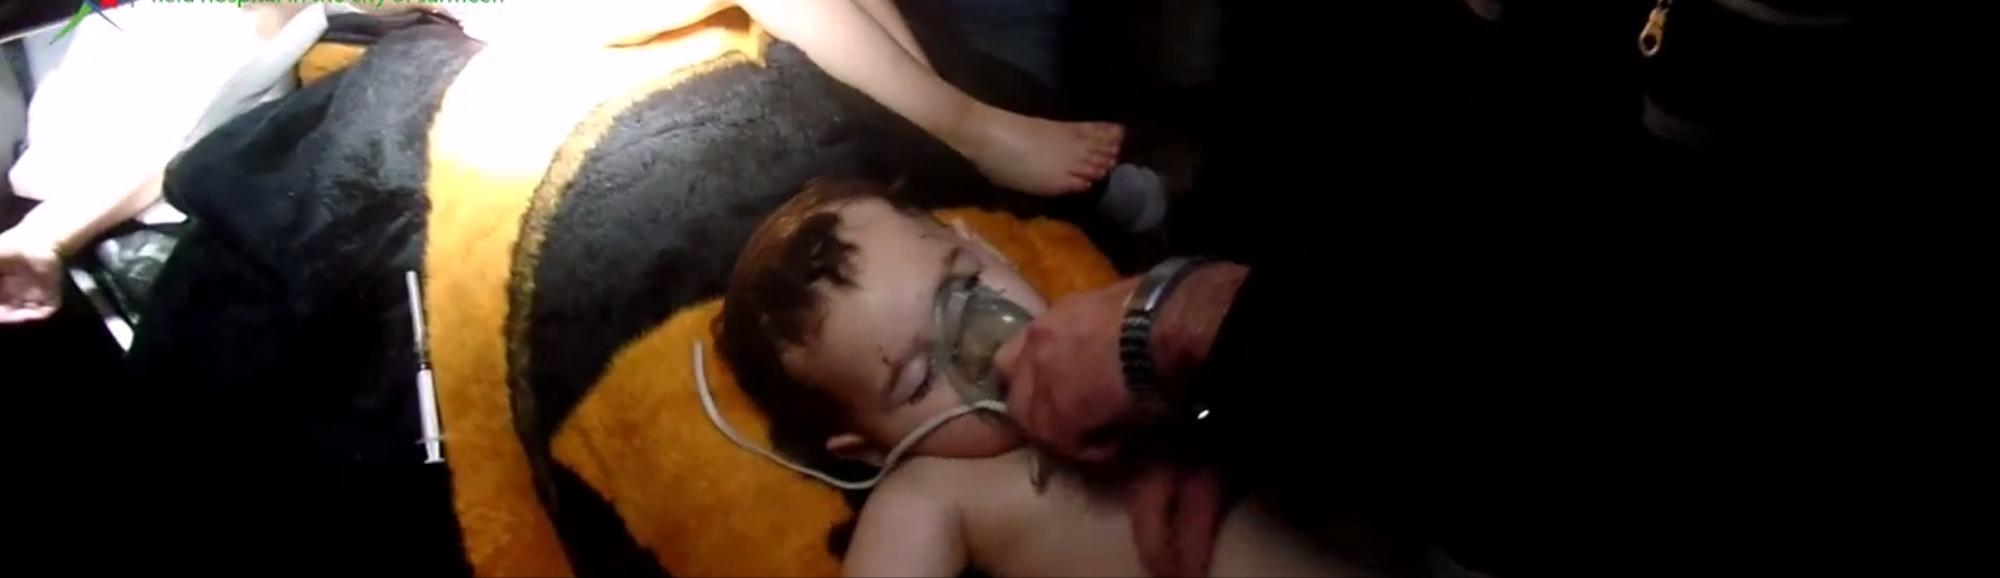 Horrifying Videos Shown at UN Display Carnage of Suspected Chlorine Attacks in Syria